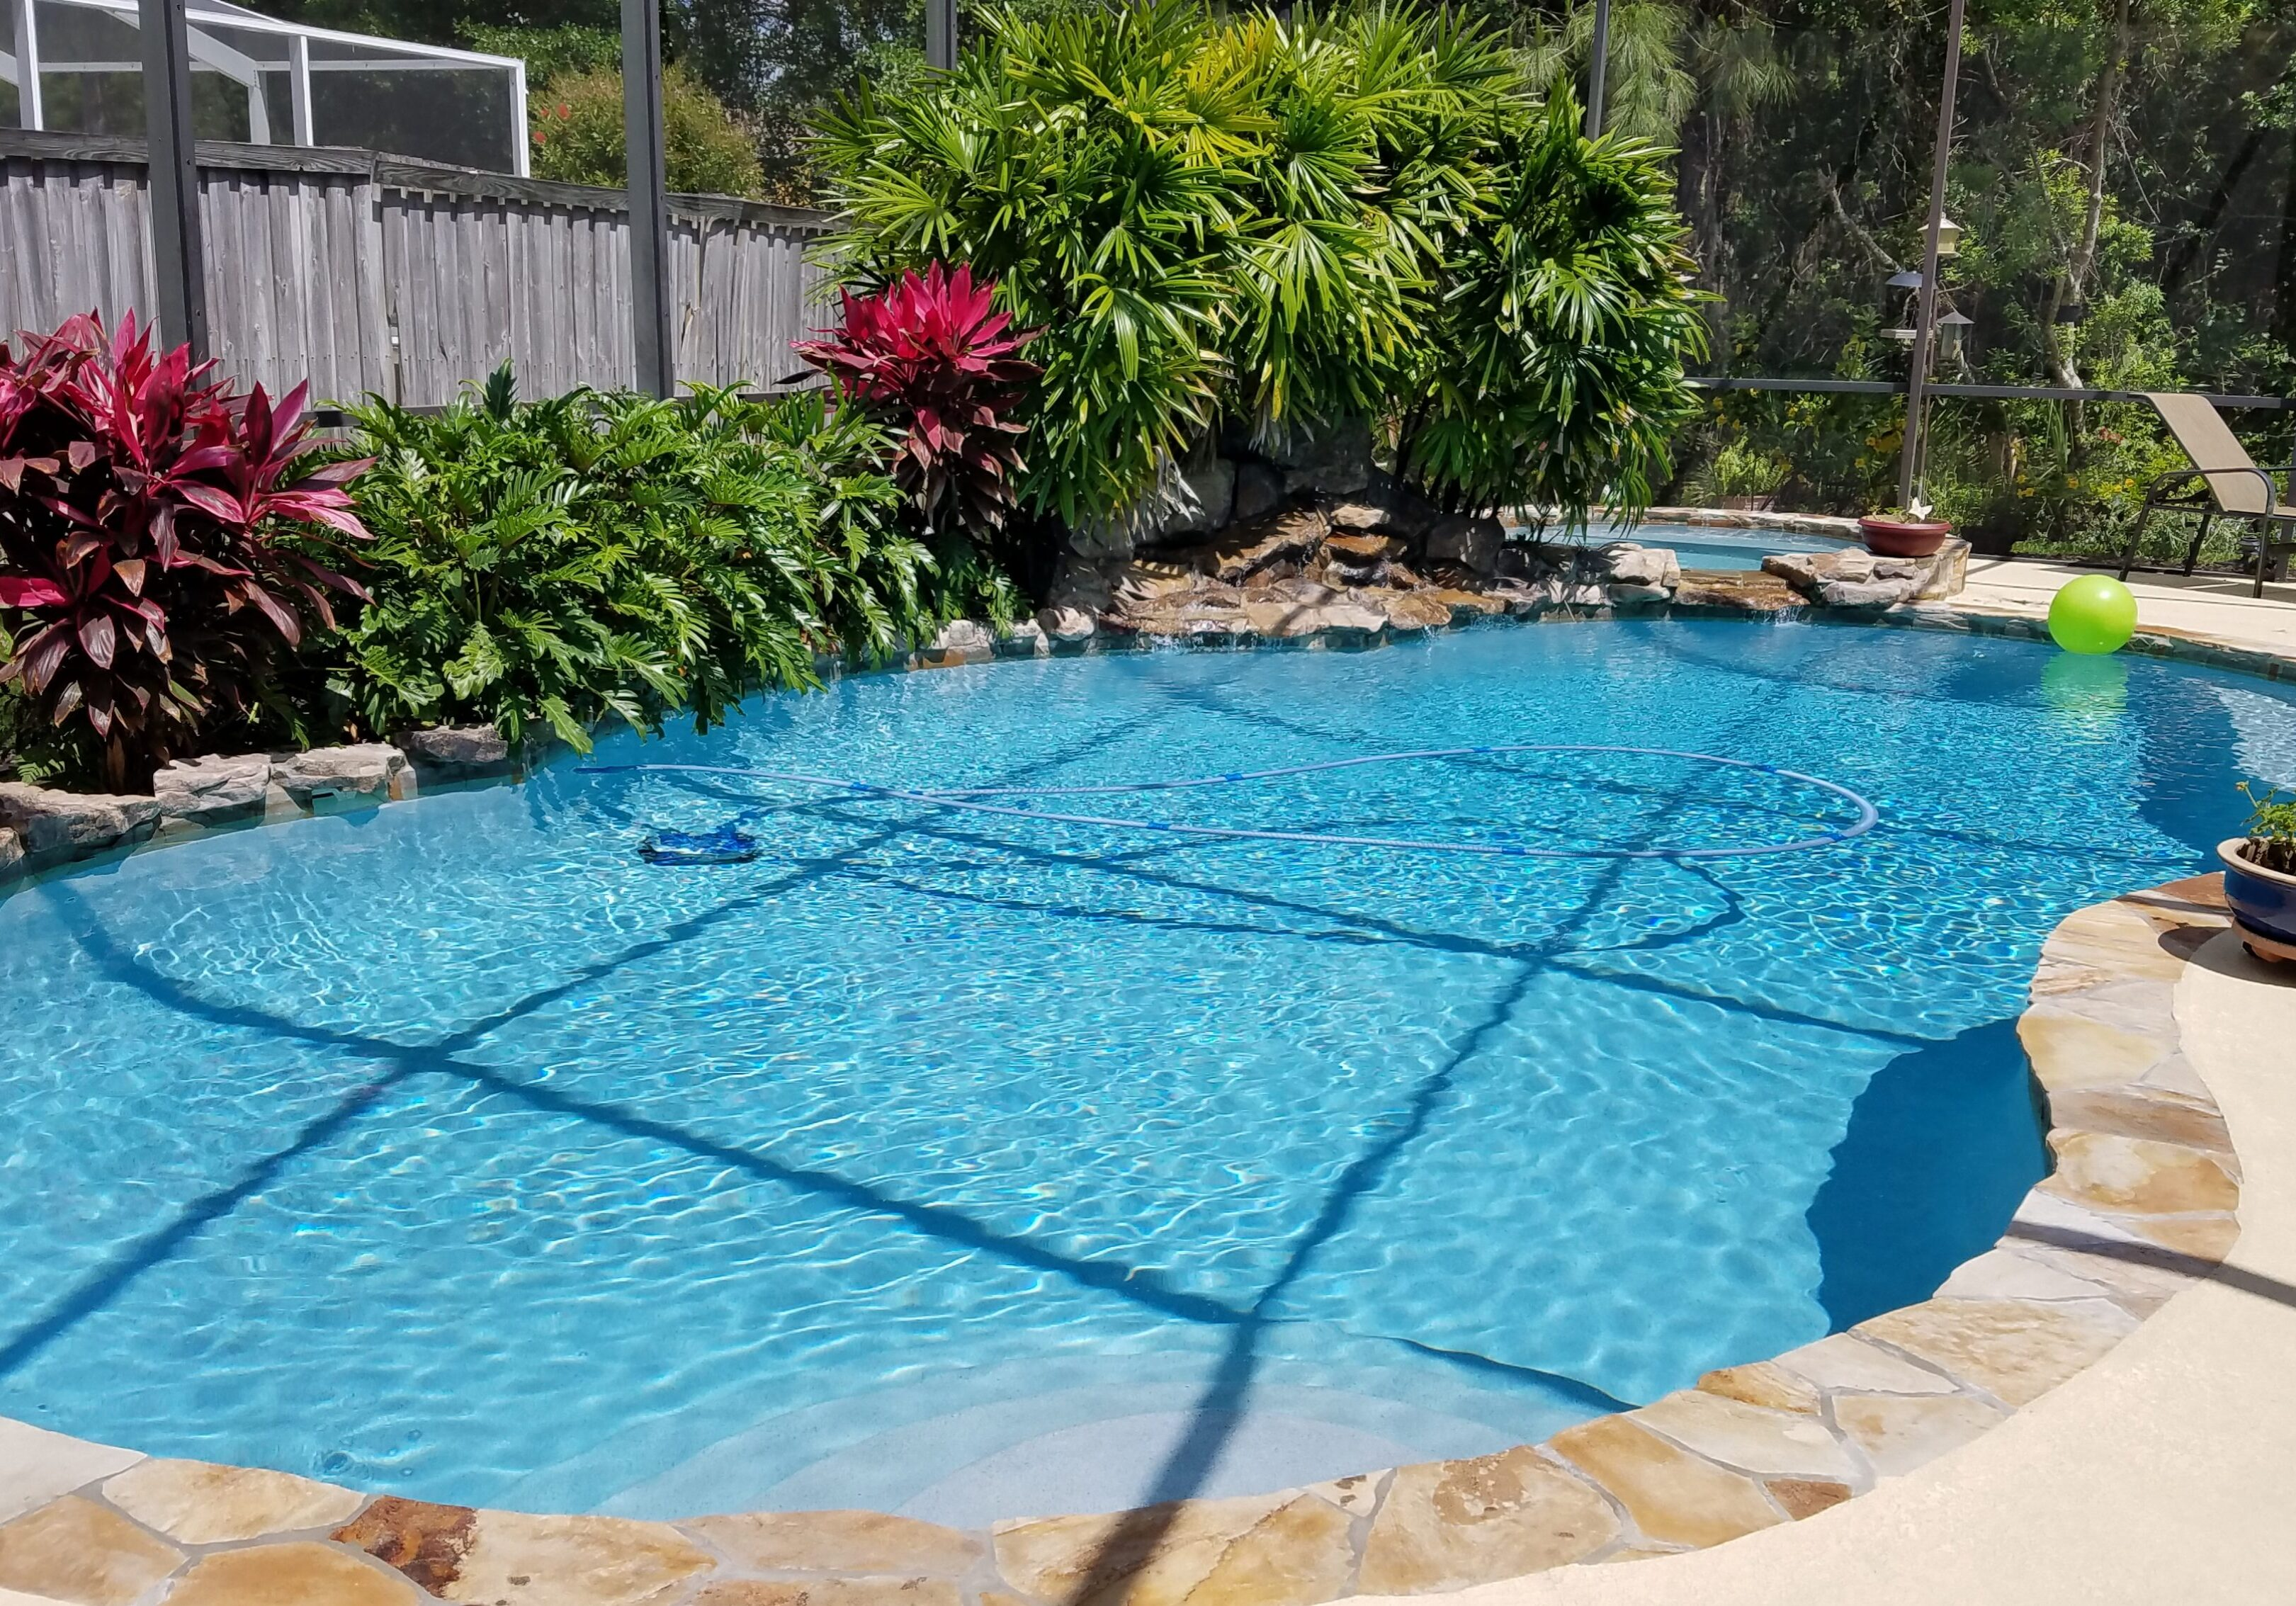 Backyard Pool Supply about - backyard pool supplies